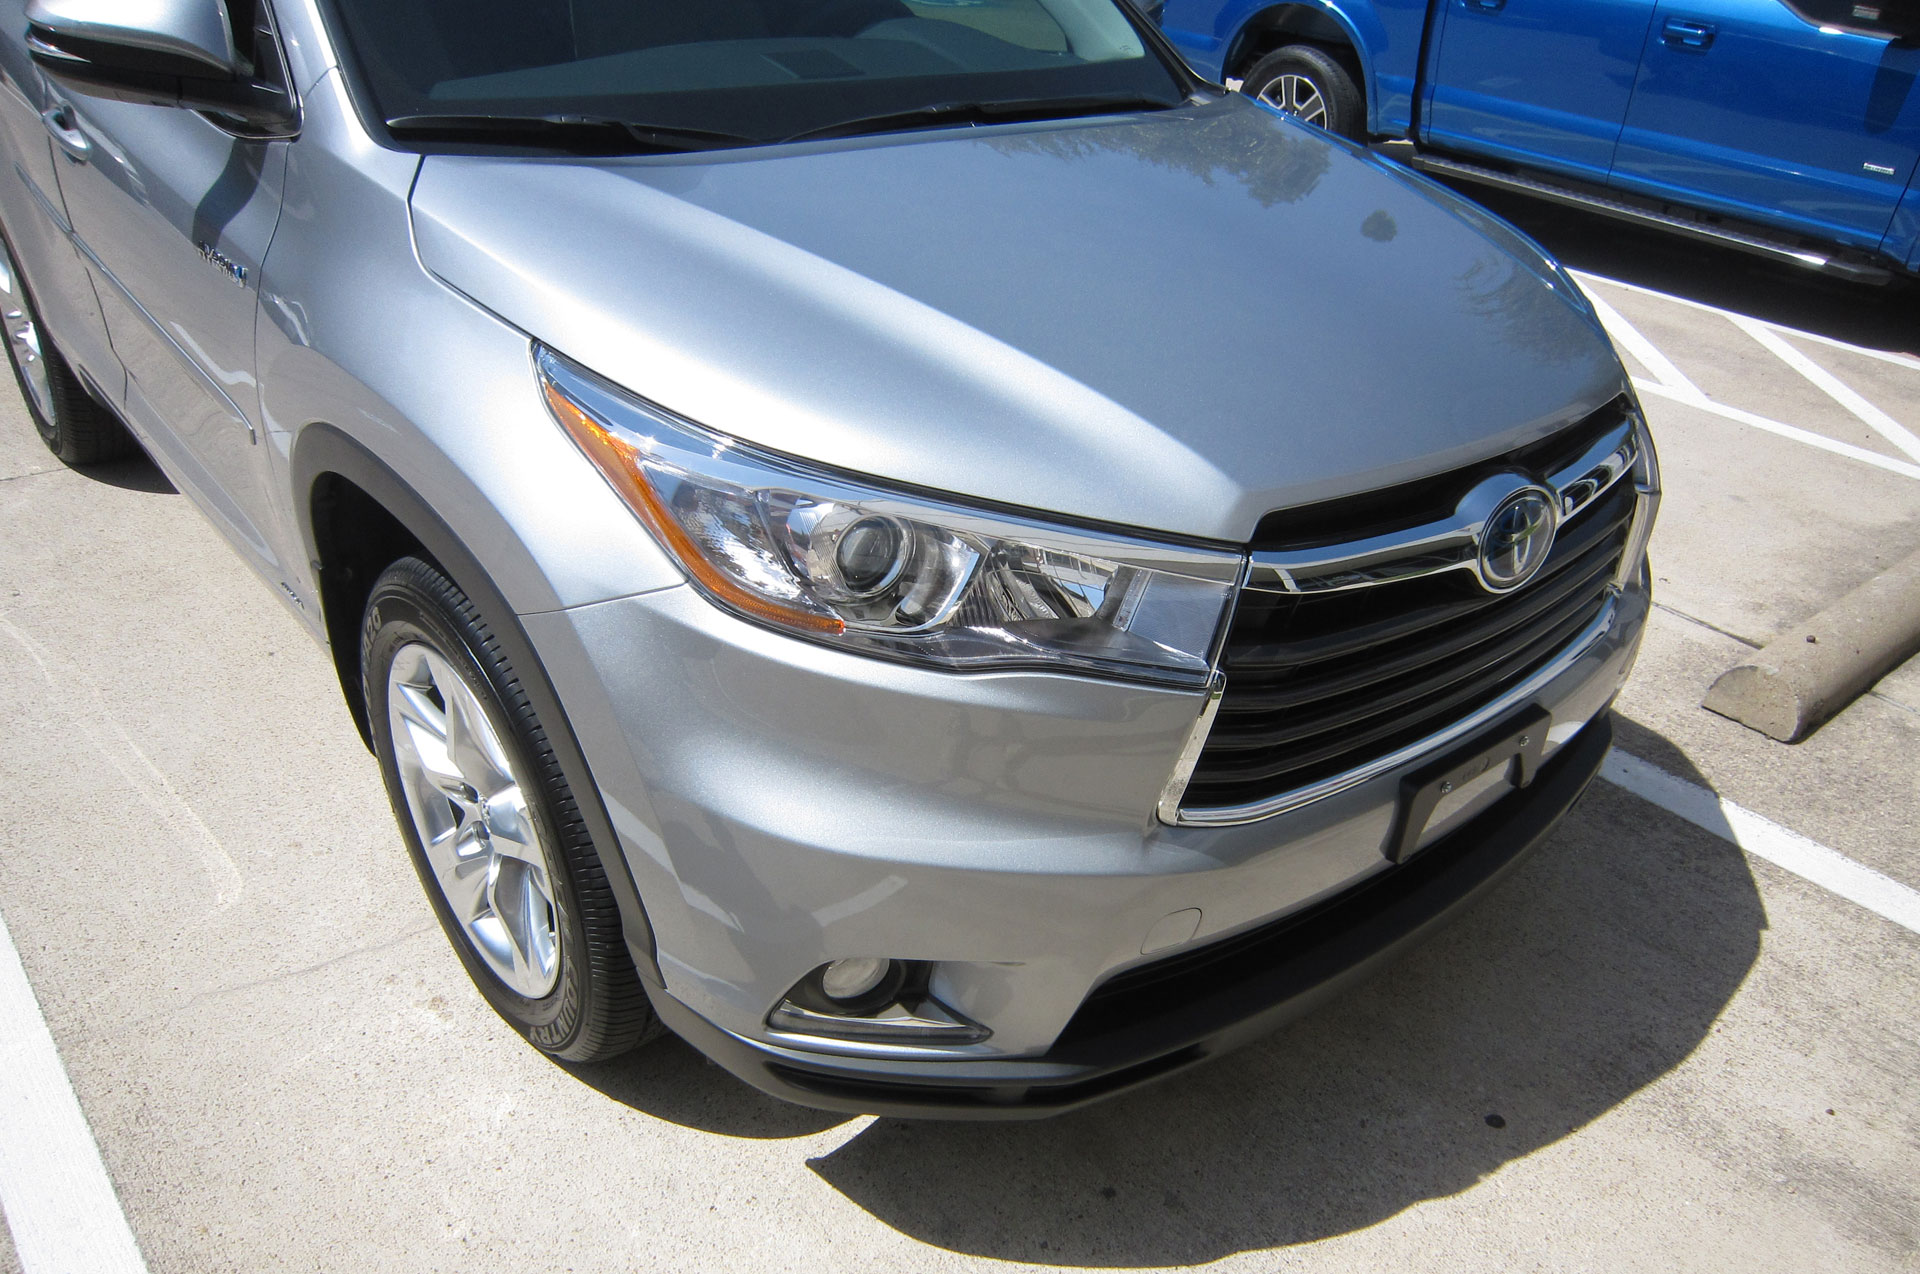 Toyota Highlander protected with 3M Pro Series Clear Bra Paint Protection Film